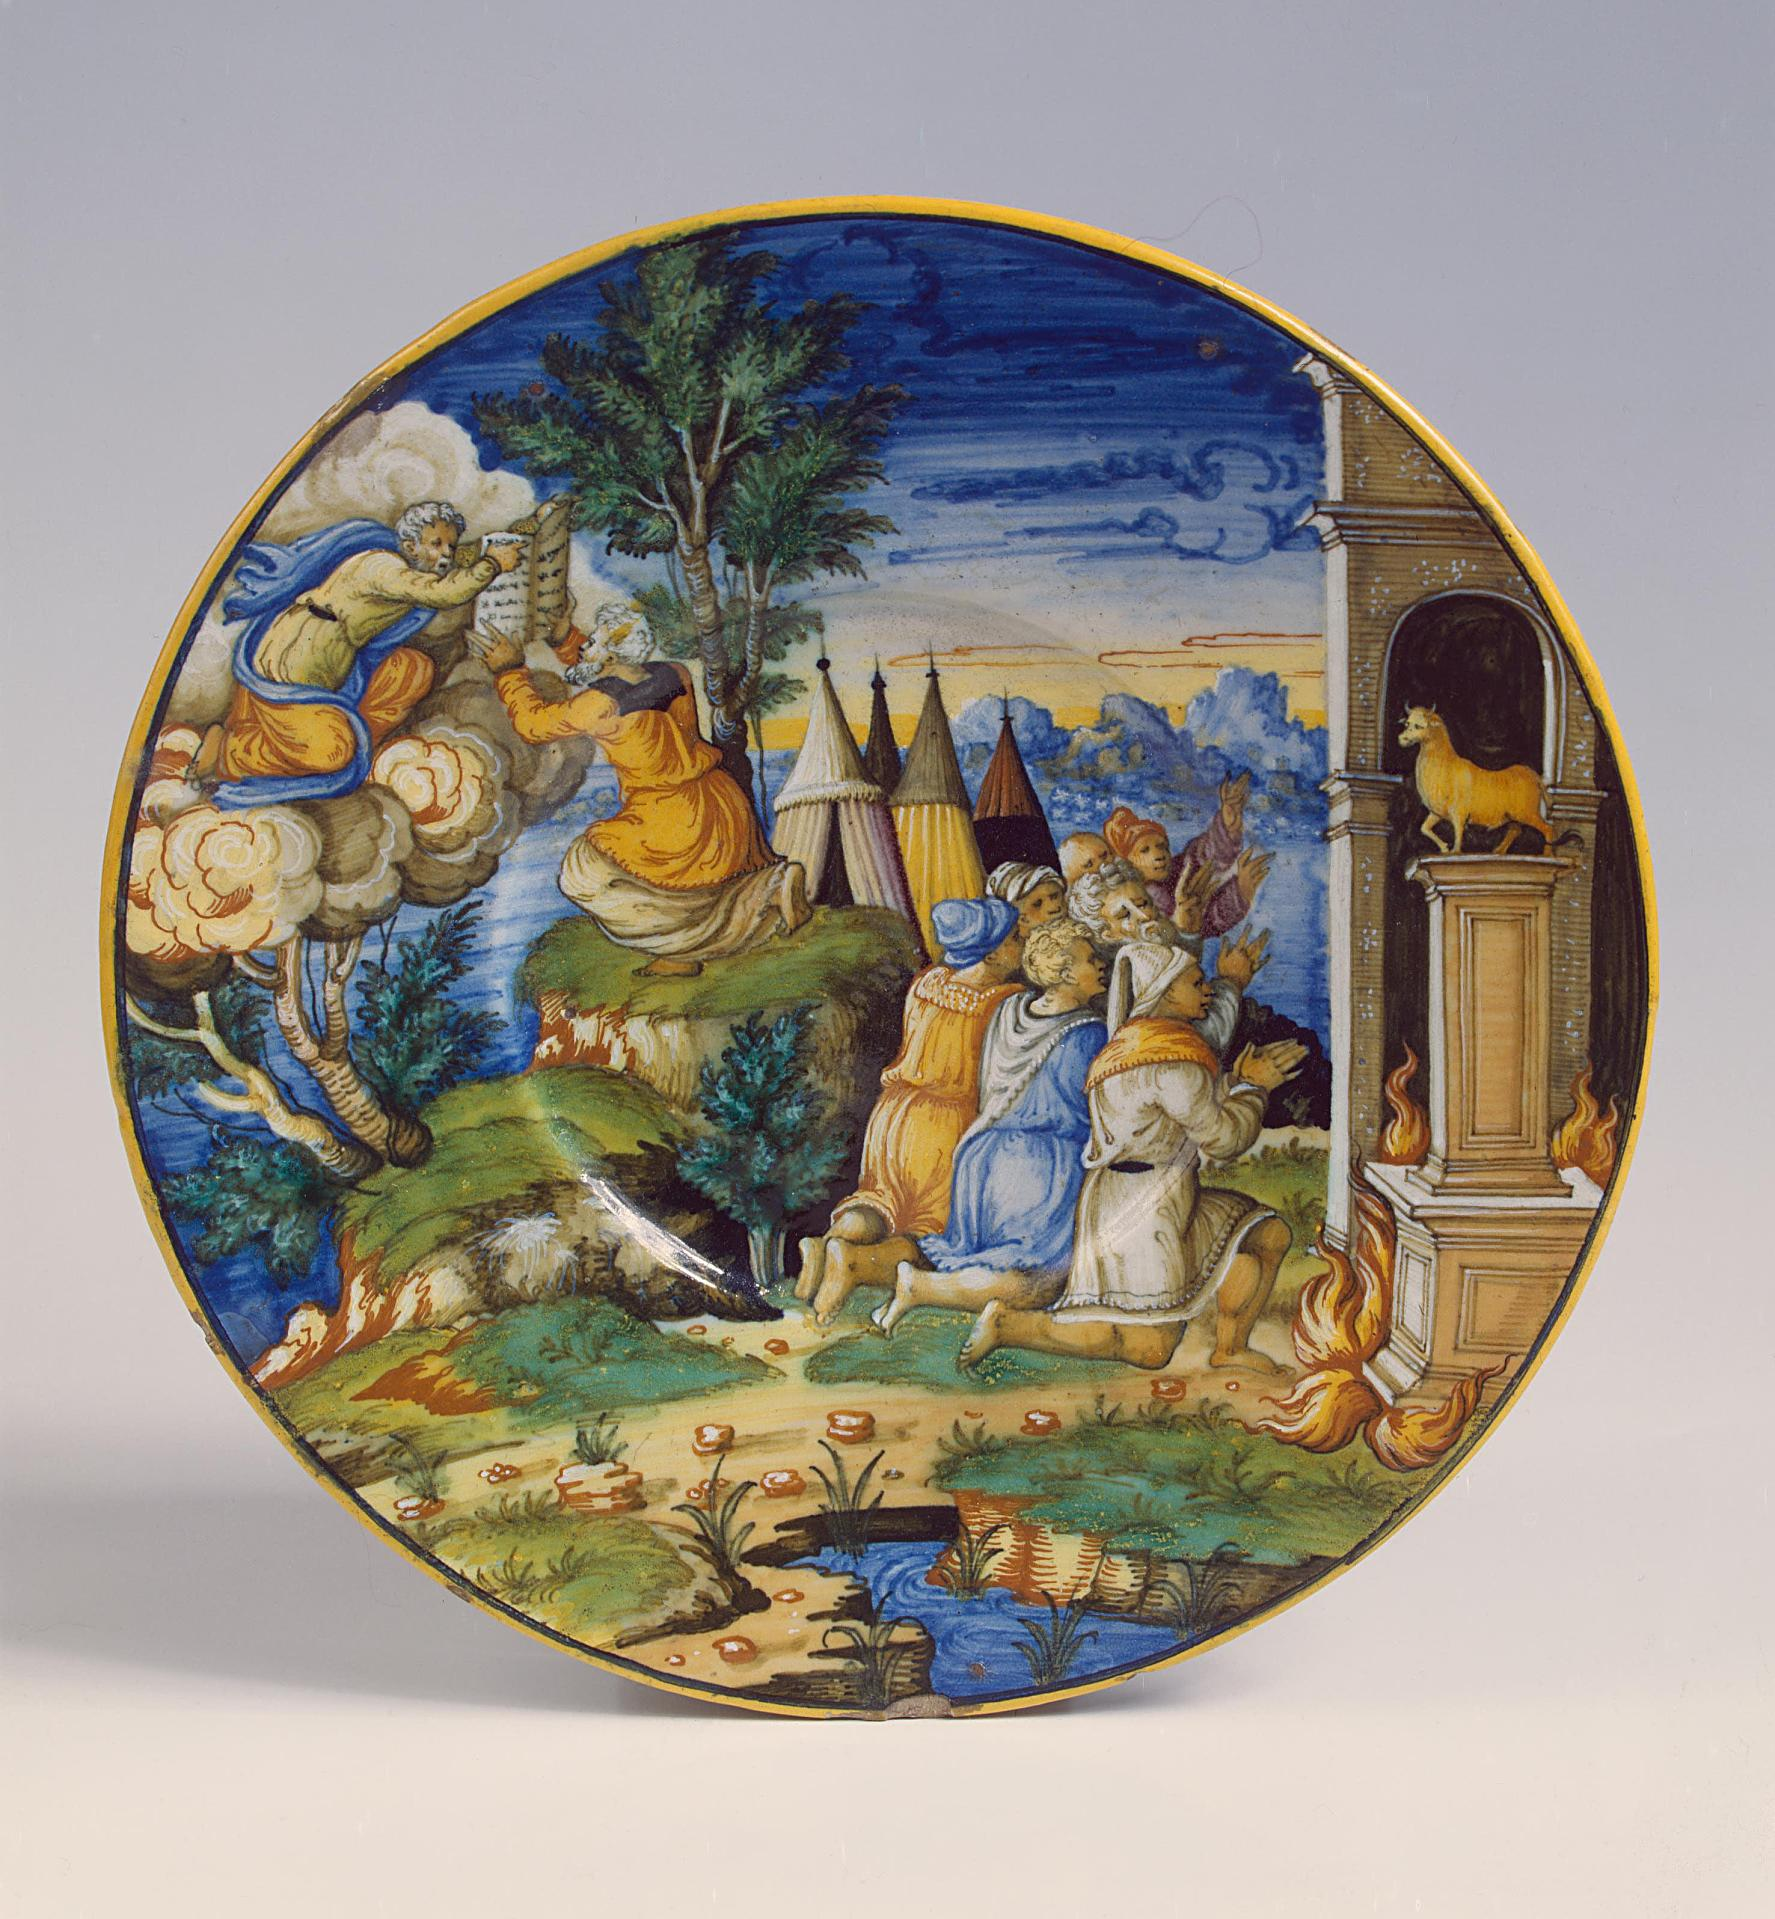 Plate: Moses receives the tablets from God, Italy, 1551, majolica